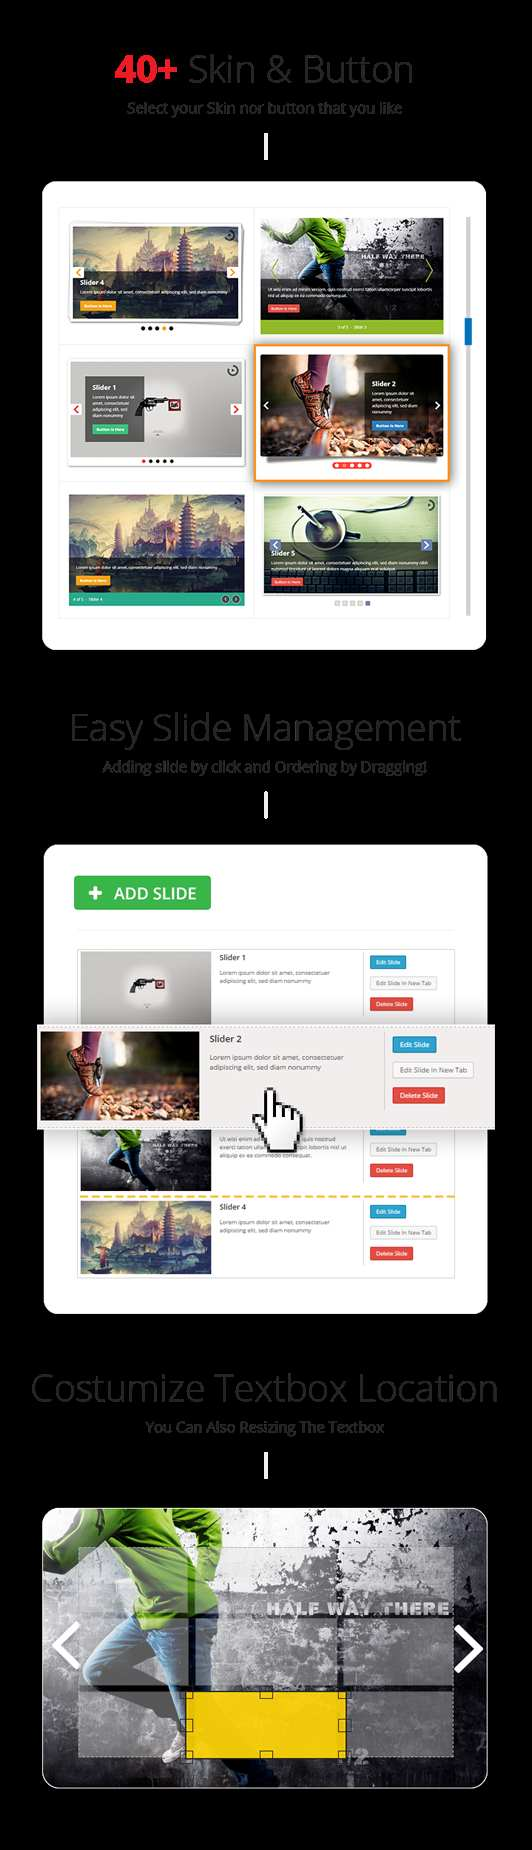 Fluid Responsive Slideshow Plugin WordPress, Download, Install